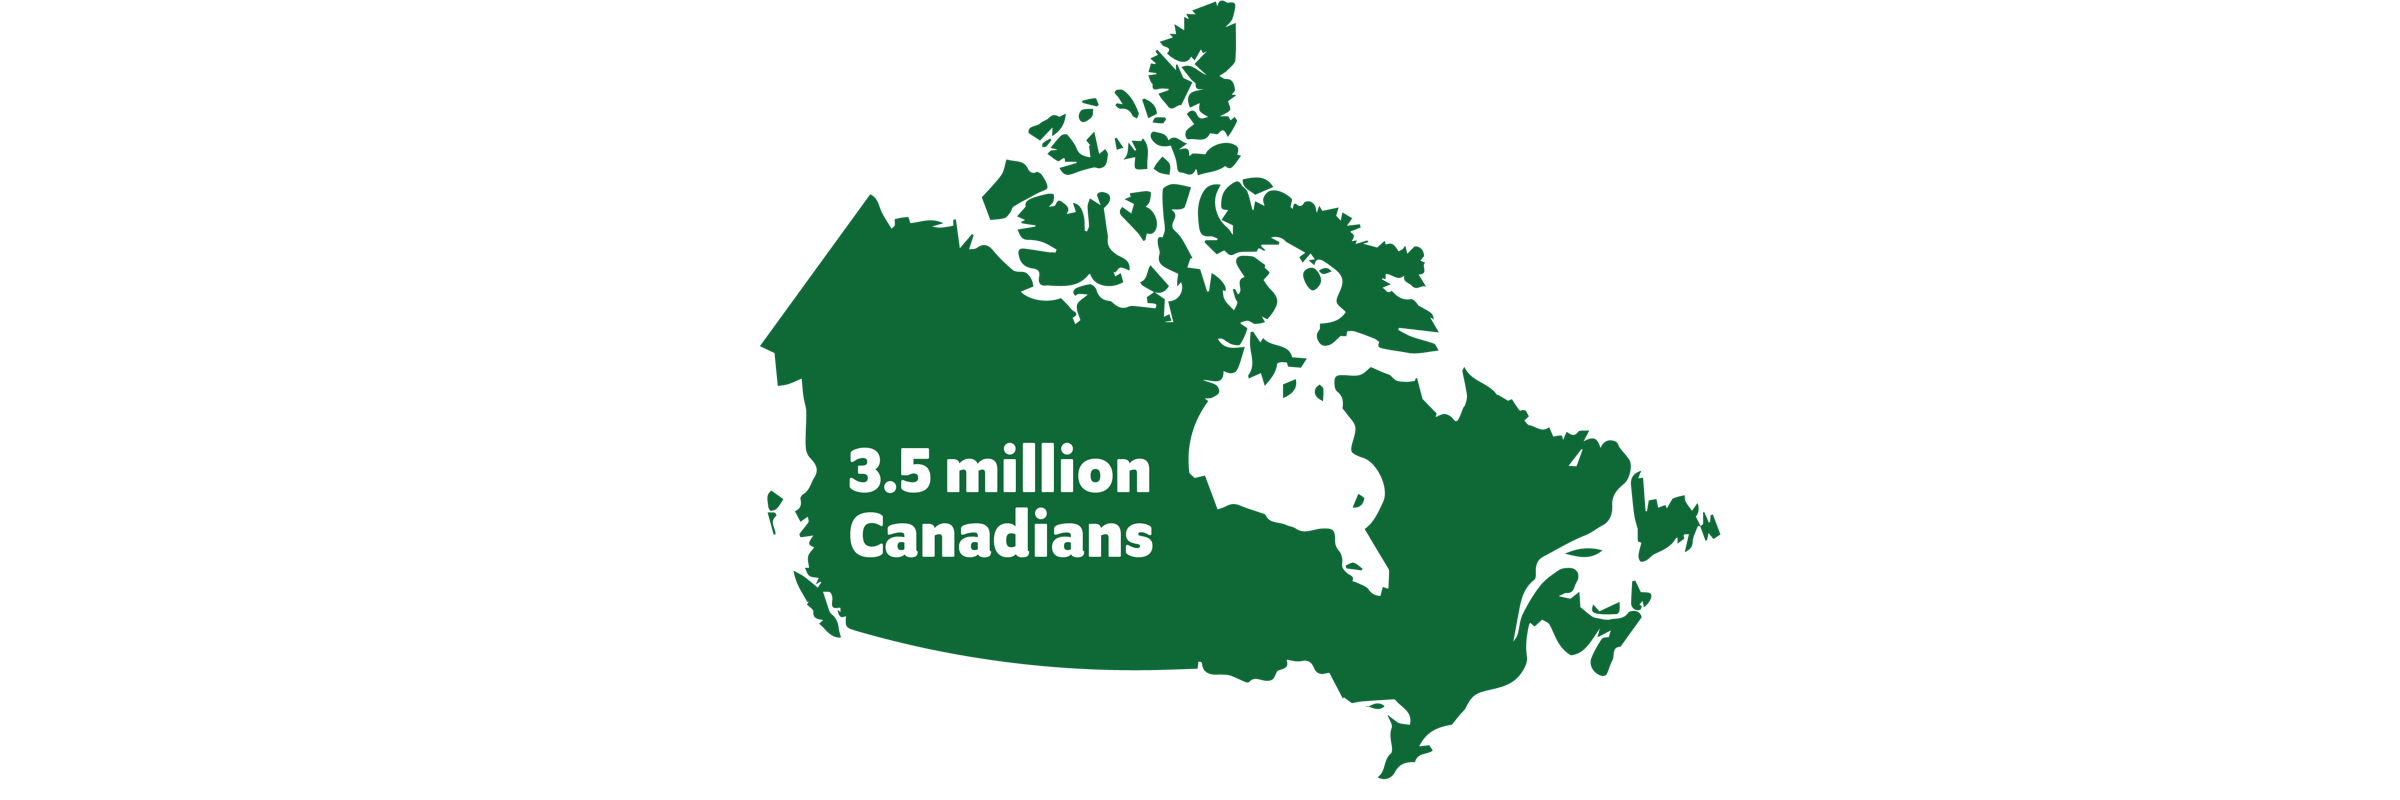 Map of the 3.5 million Canadians who currently have cataracts